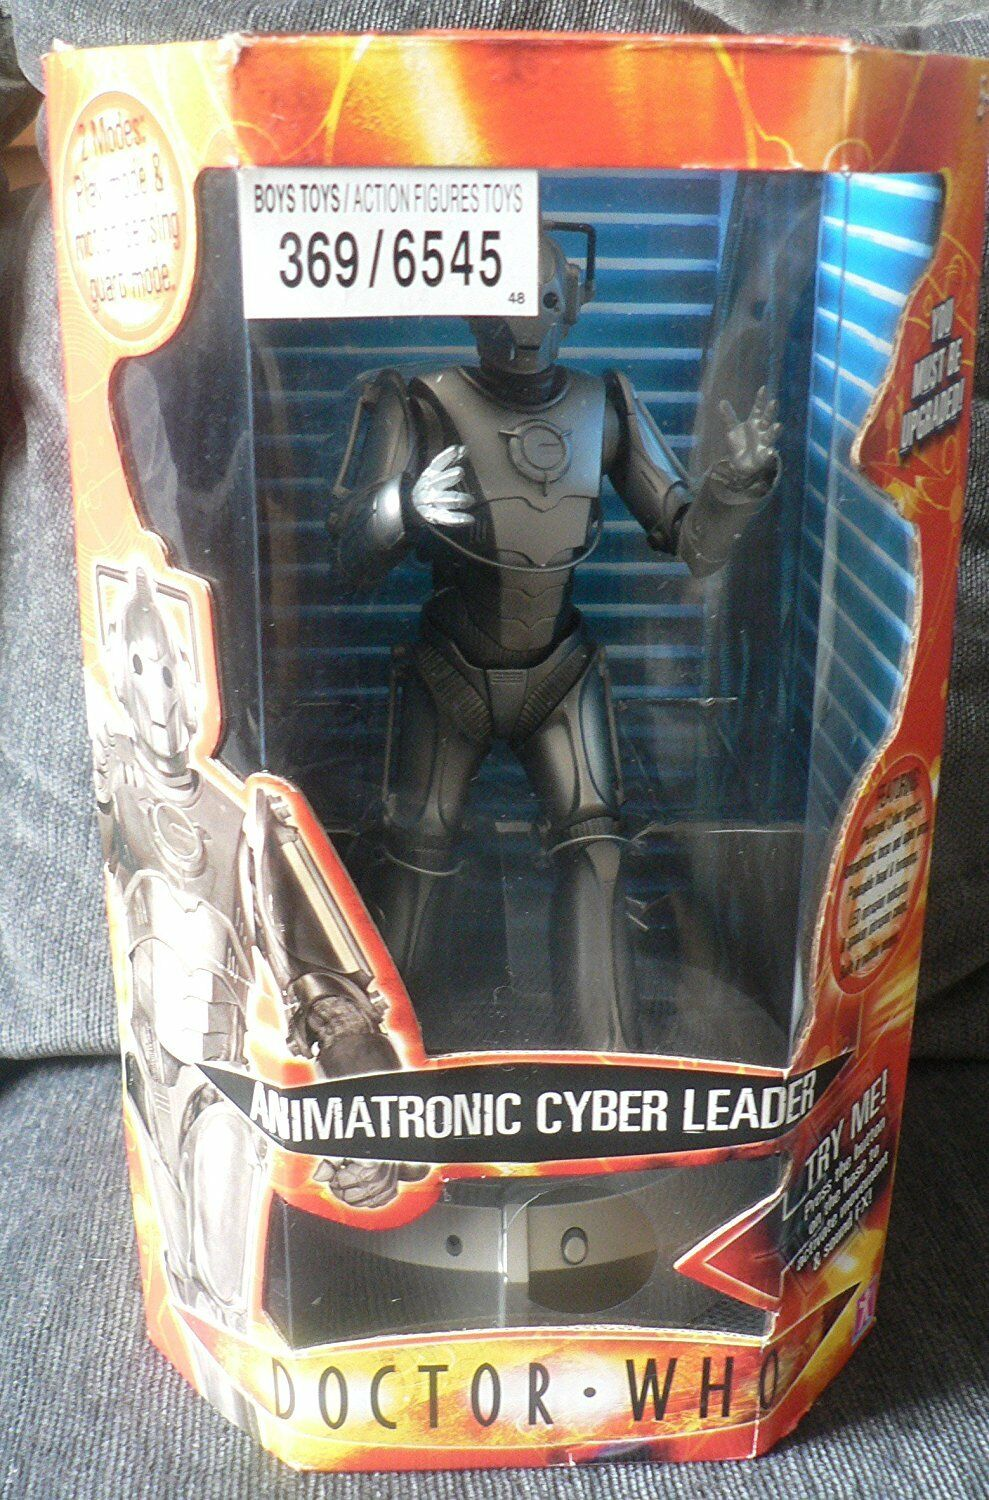 DOCTOR WHO 2006 Animatronic Cyber Leader Room Guard LED Cyberman sound BBC